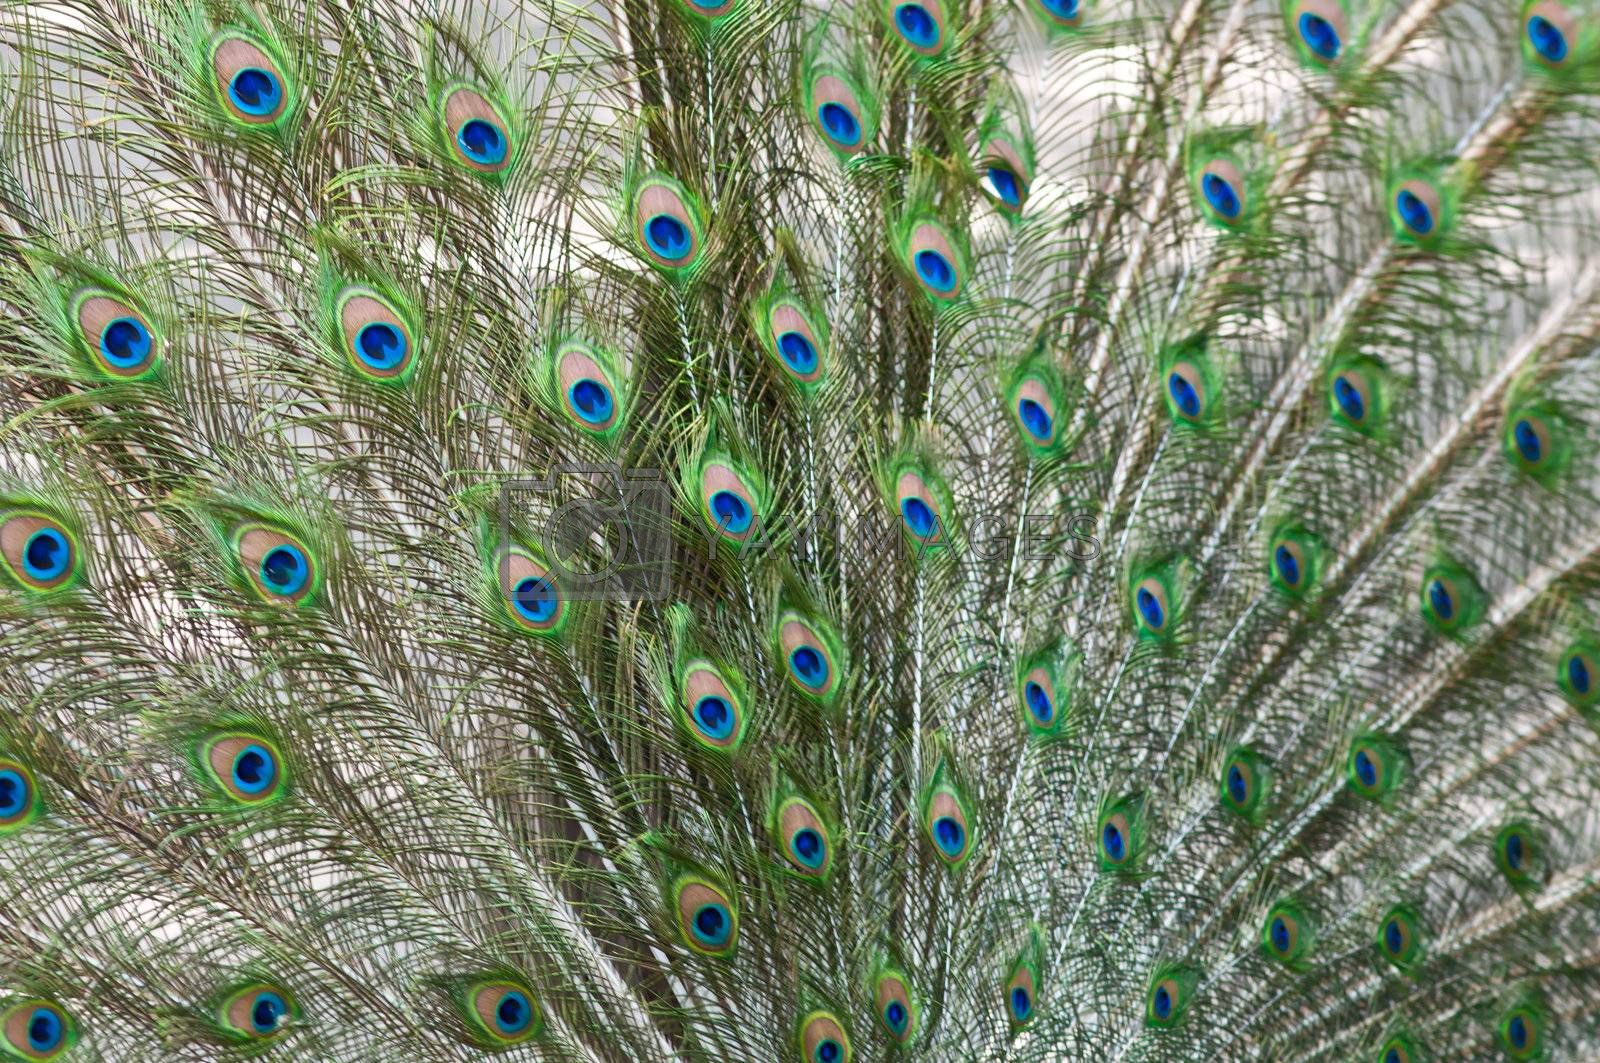 Picture of a beautiful male peacock with colorful tail on display.